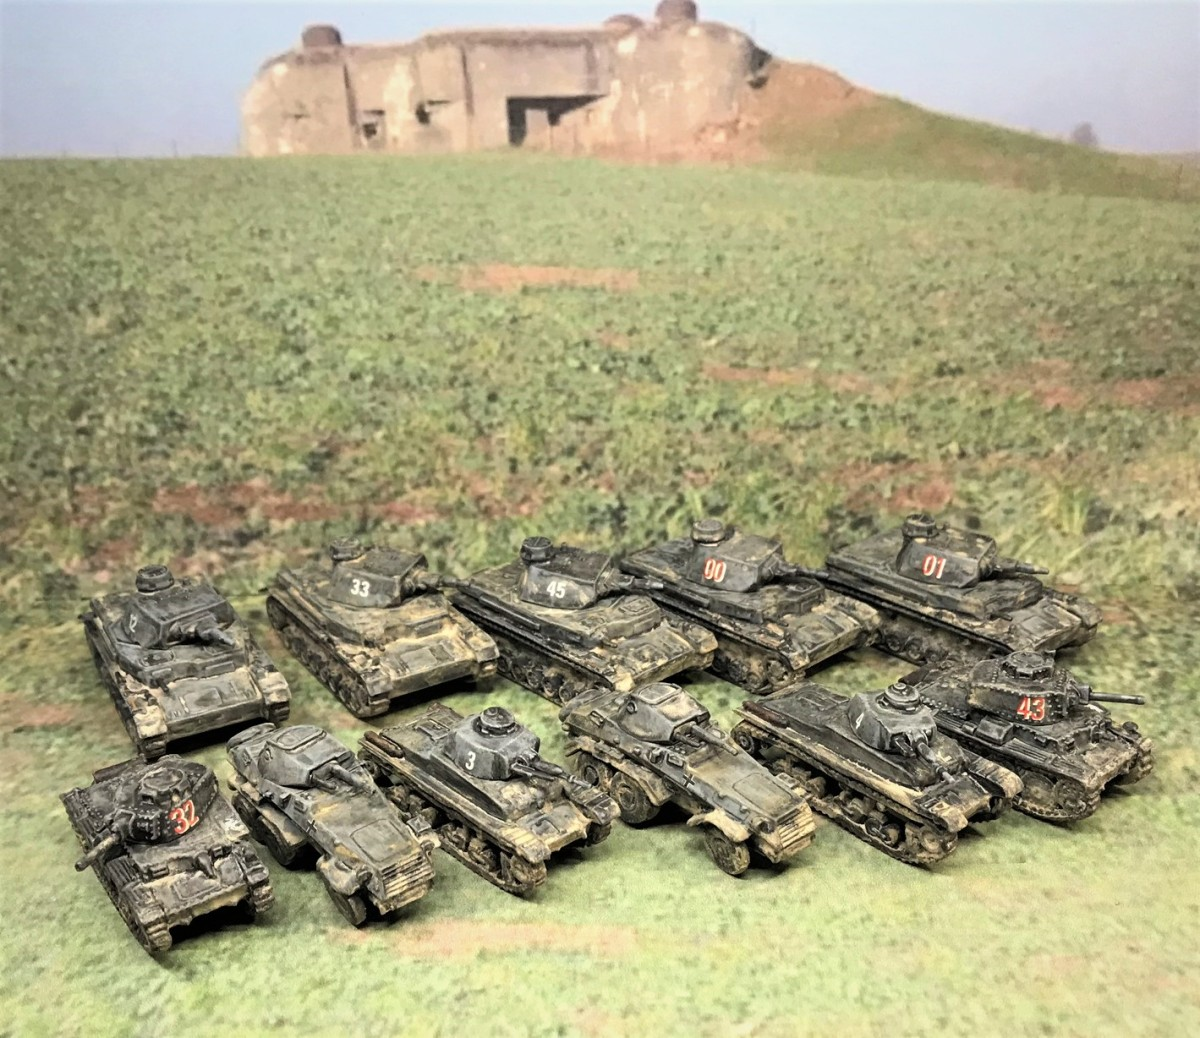 German Armor for the 80th Anniversary of the Battle of France: Panzer 35(t), Panzer 38(t), Panzer IVB, and Panzer IVD Tanks; and Sd.Kfz. 231 (6-rad) ArmoredCars